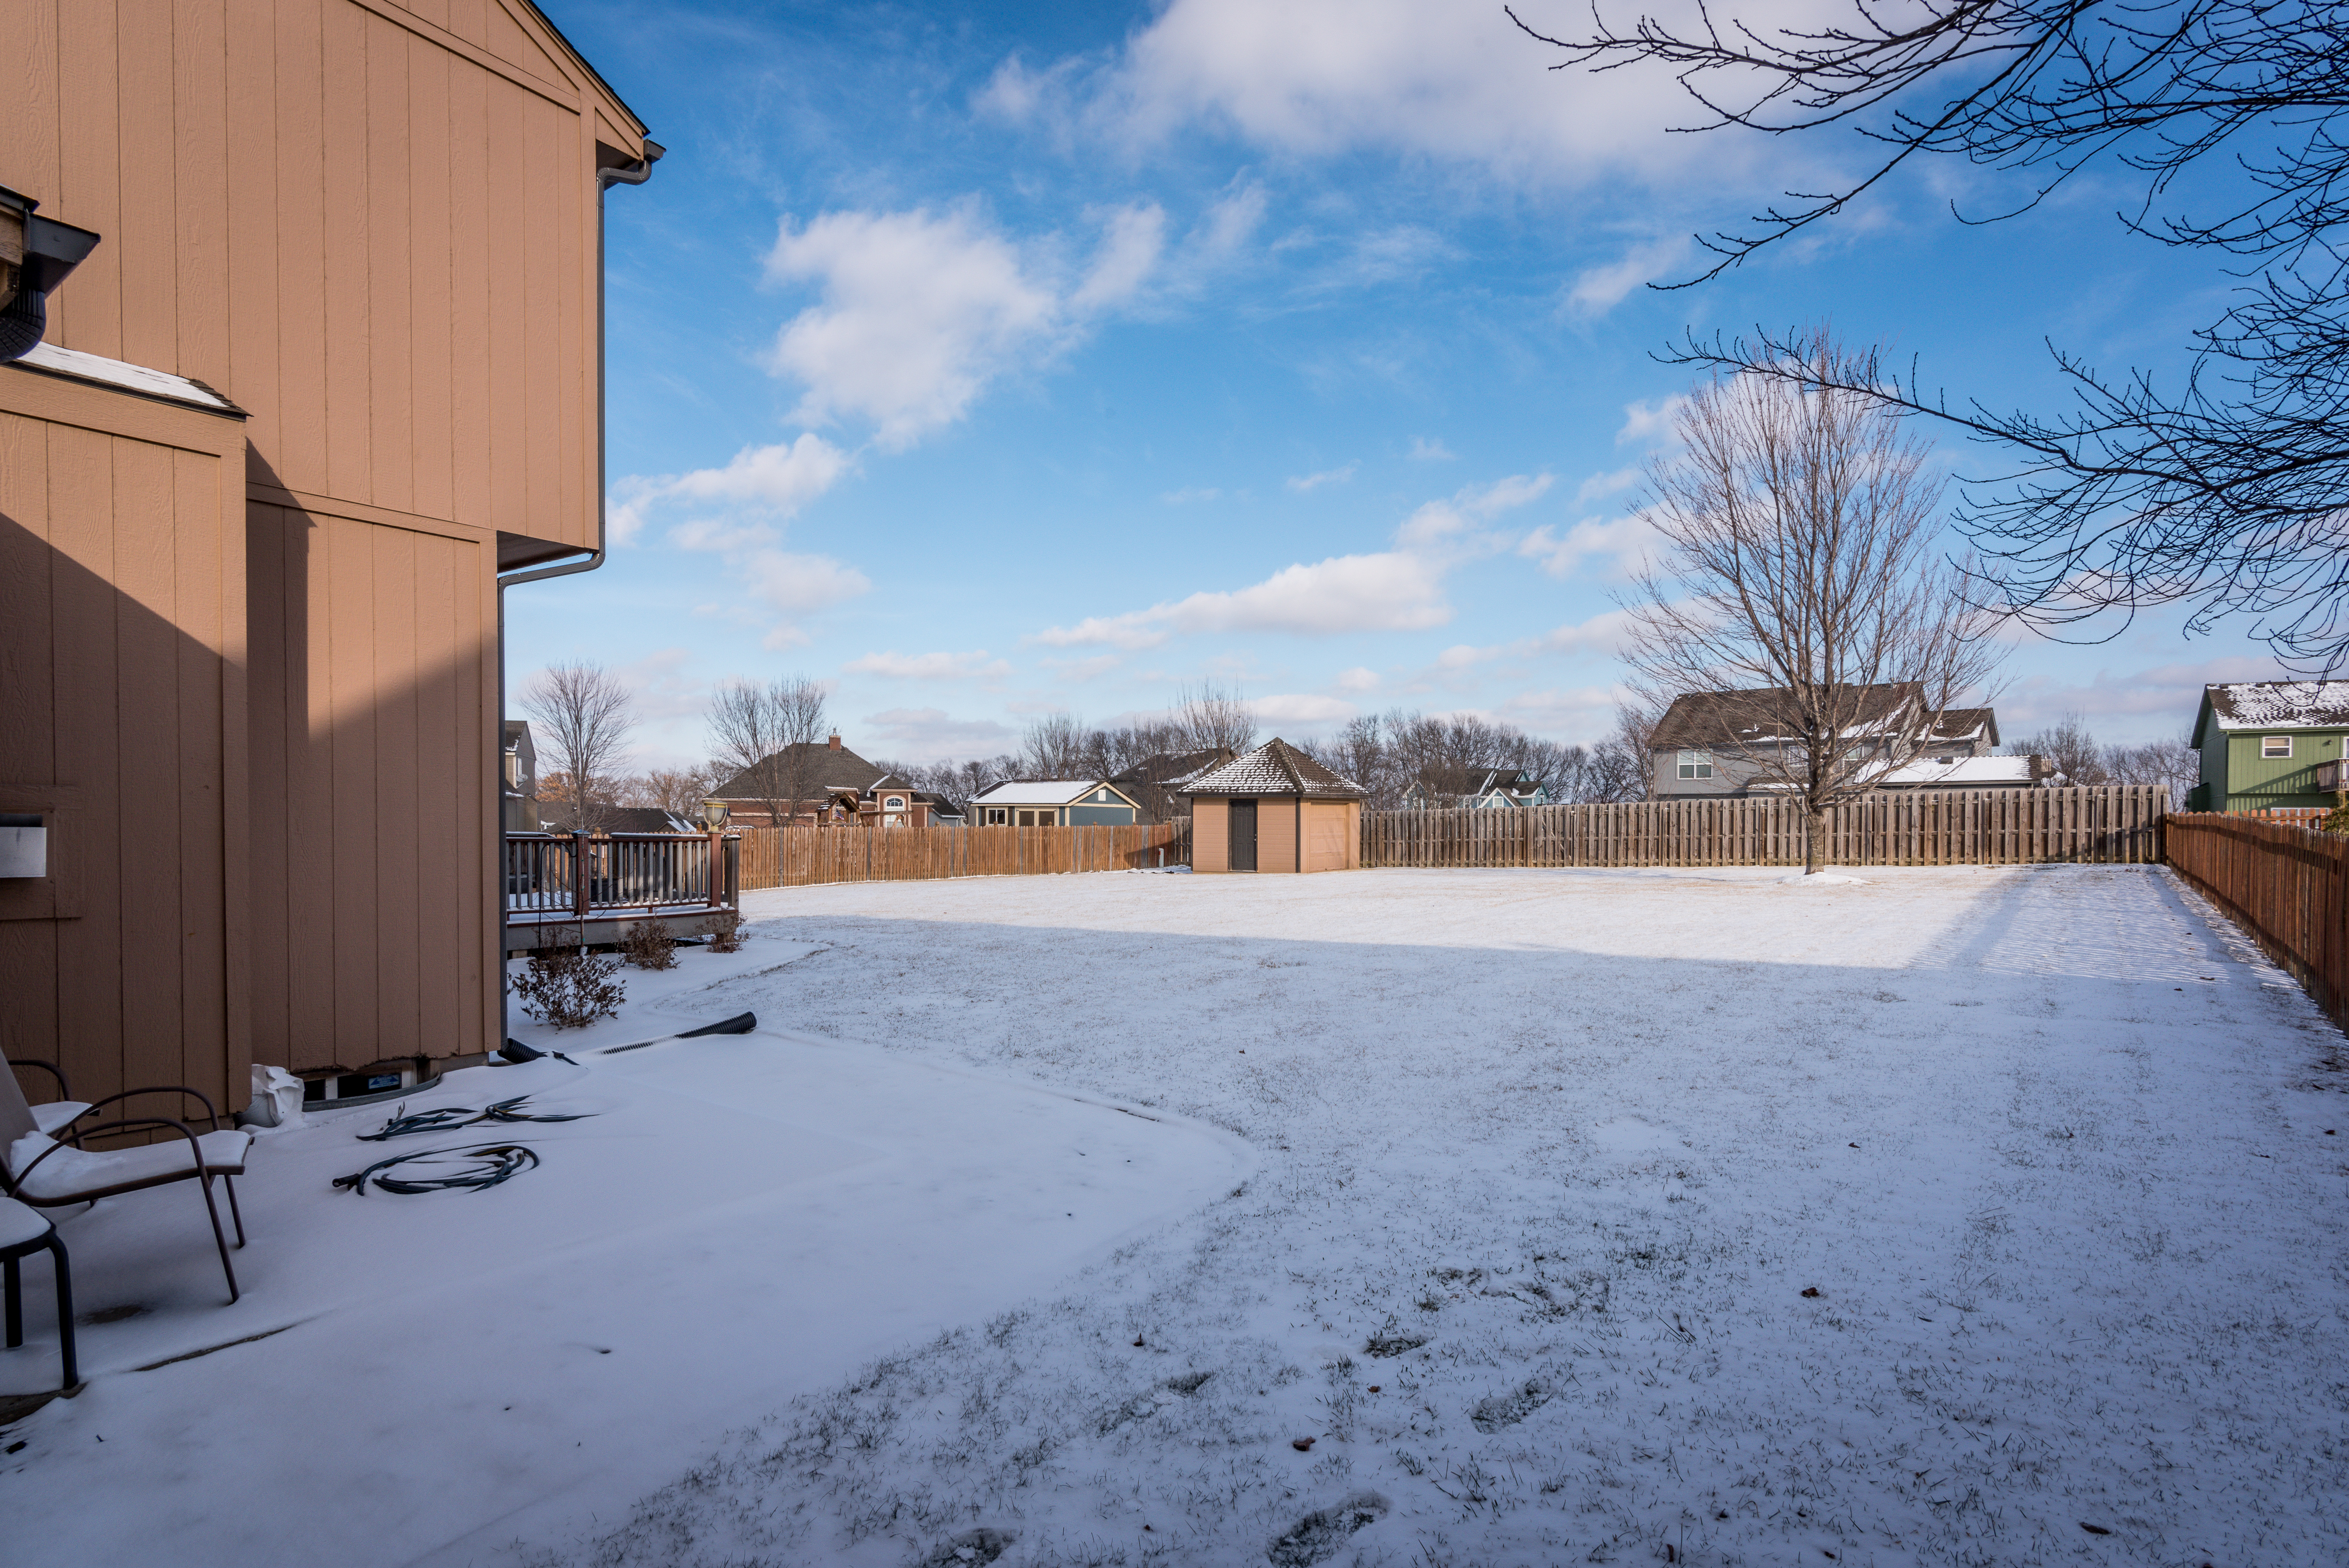 4421 N 122nd St, KCK - exterior-3